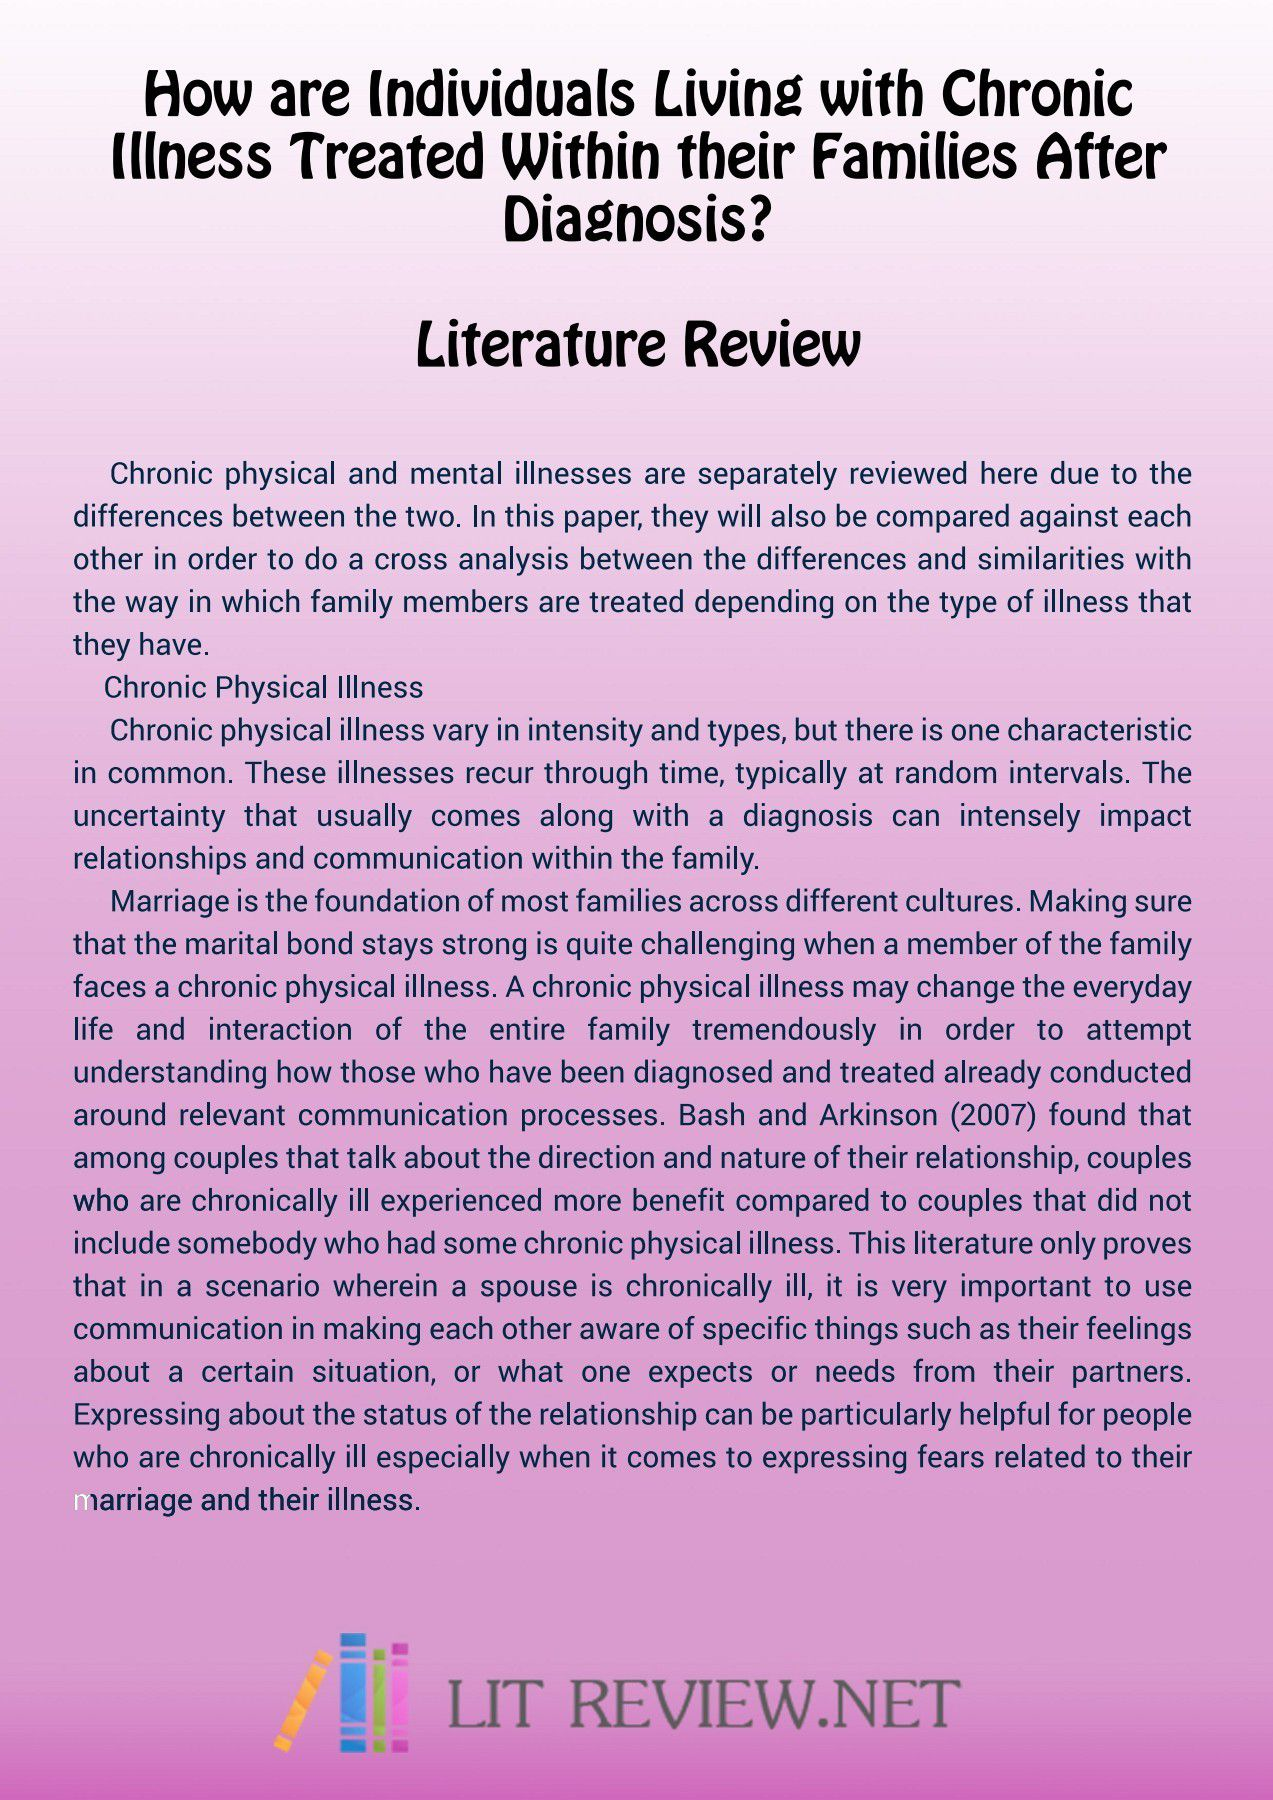 000 Wonderful Literature Review Example Apa Image  Style 6th Edition 7thFull